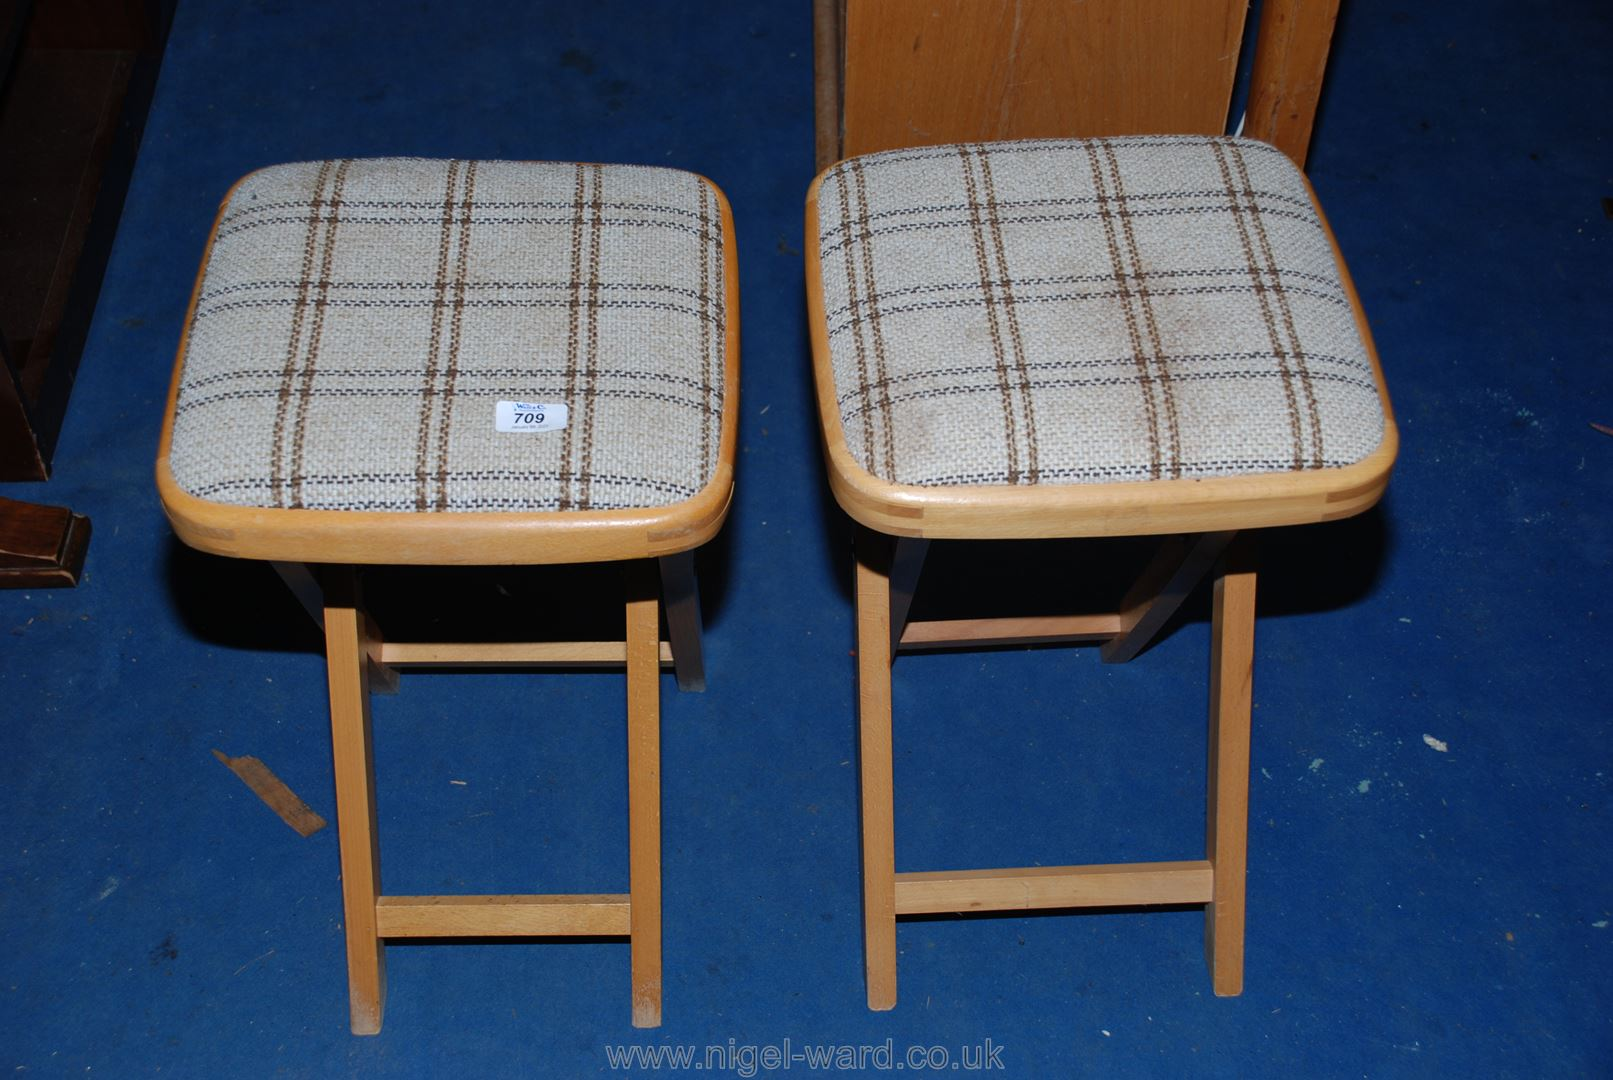 Two check-upholstered folding stools.